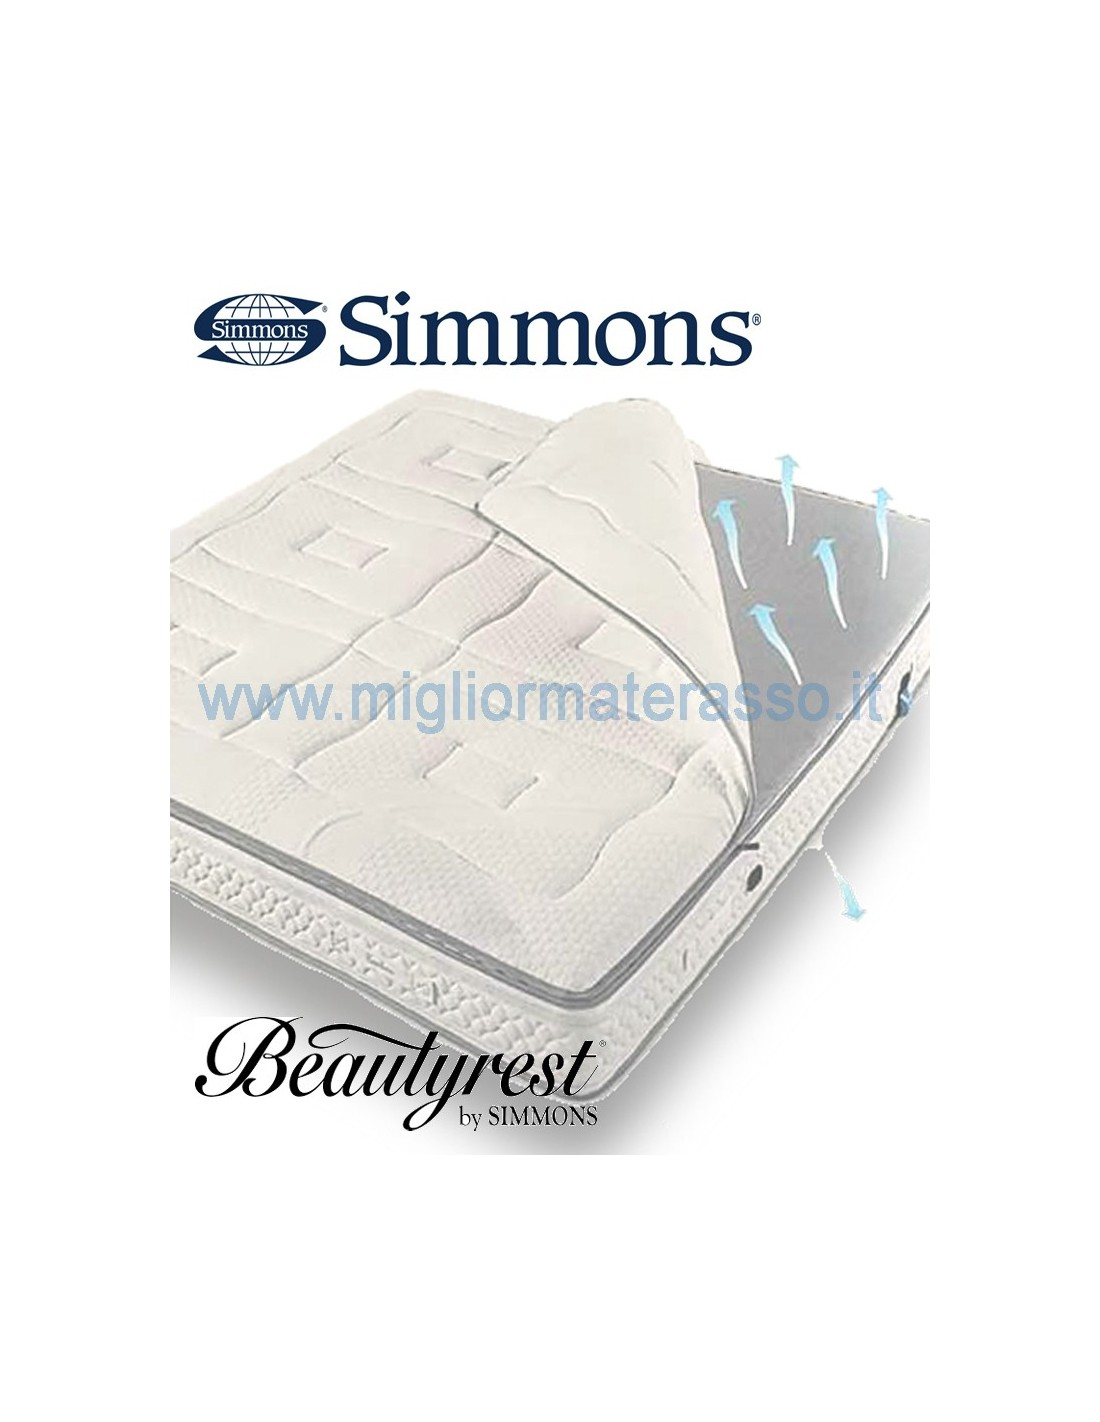 Excellence Simmons hypoallergenic version mattress